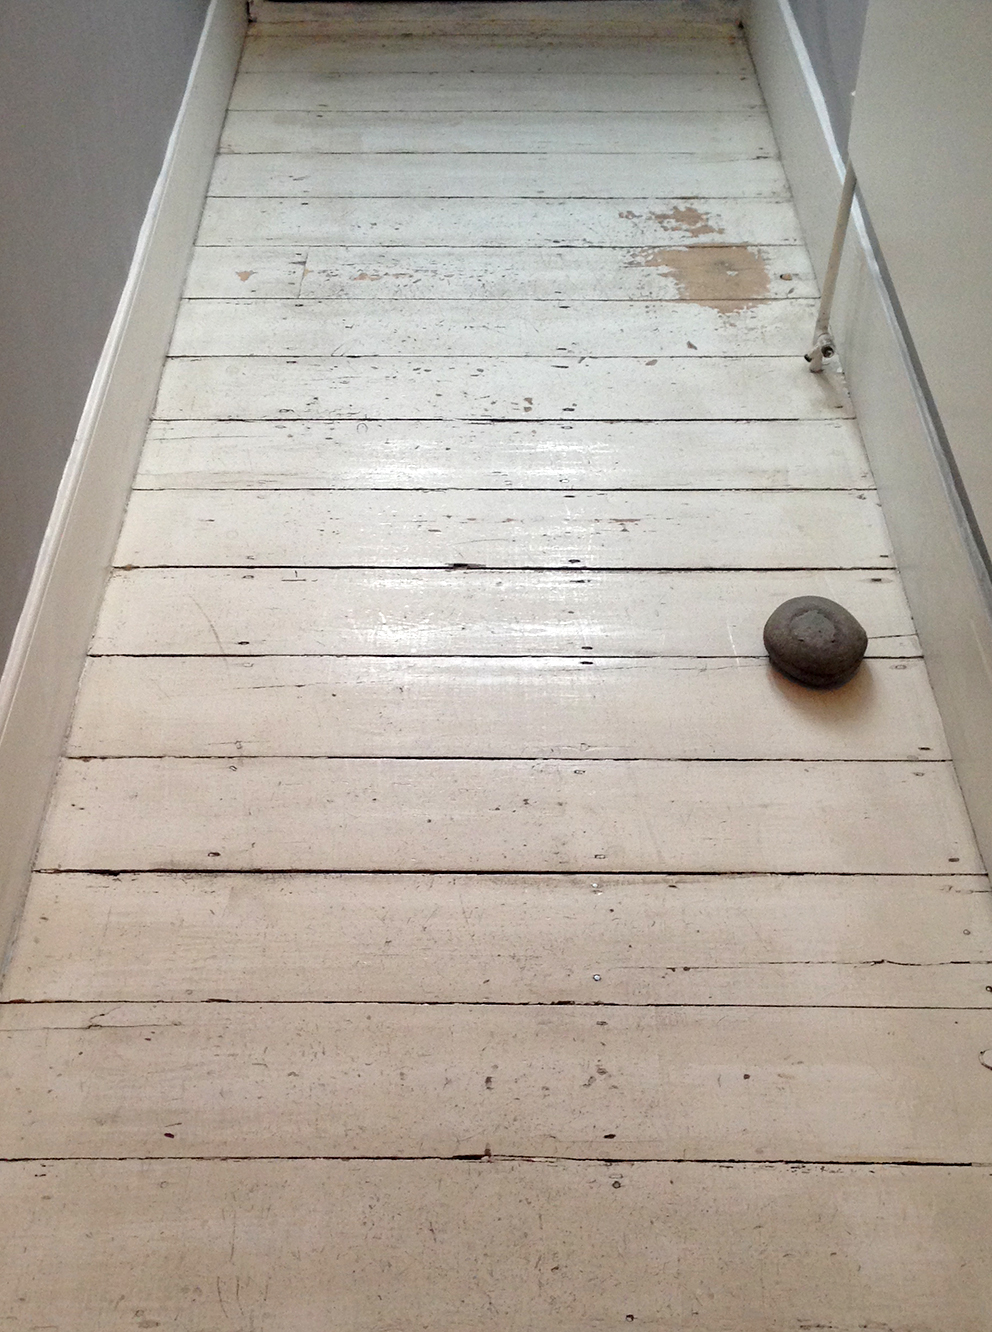 Worn painted floorboards prior to painting